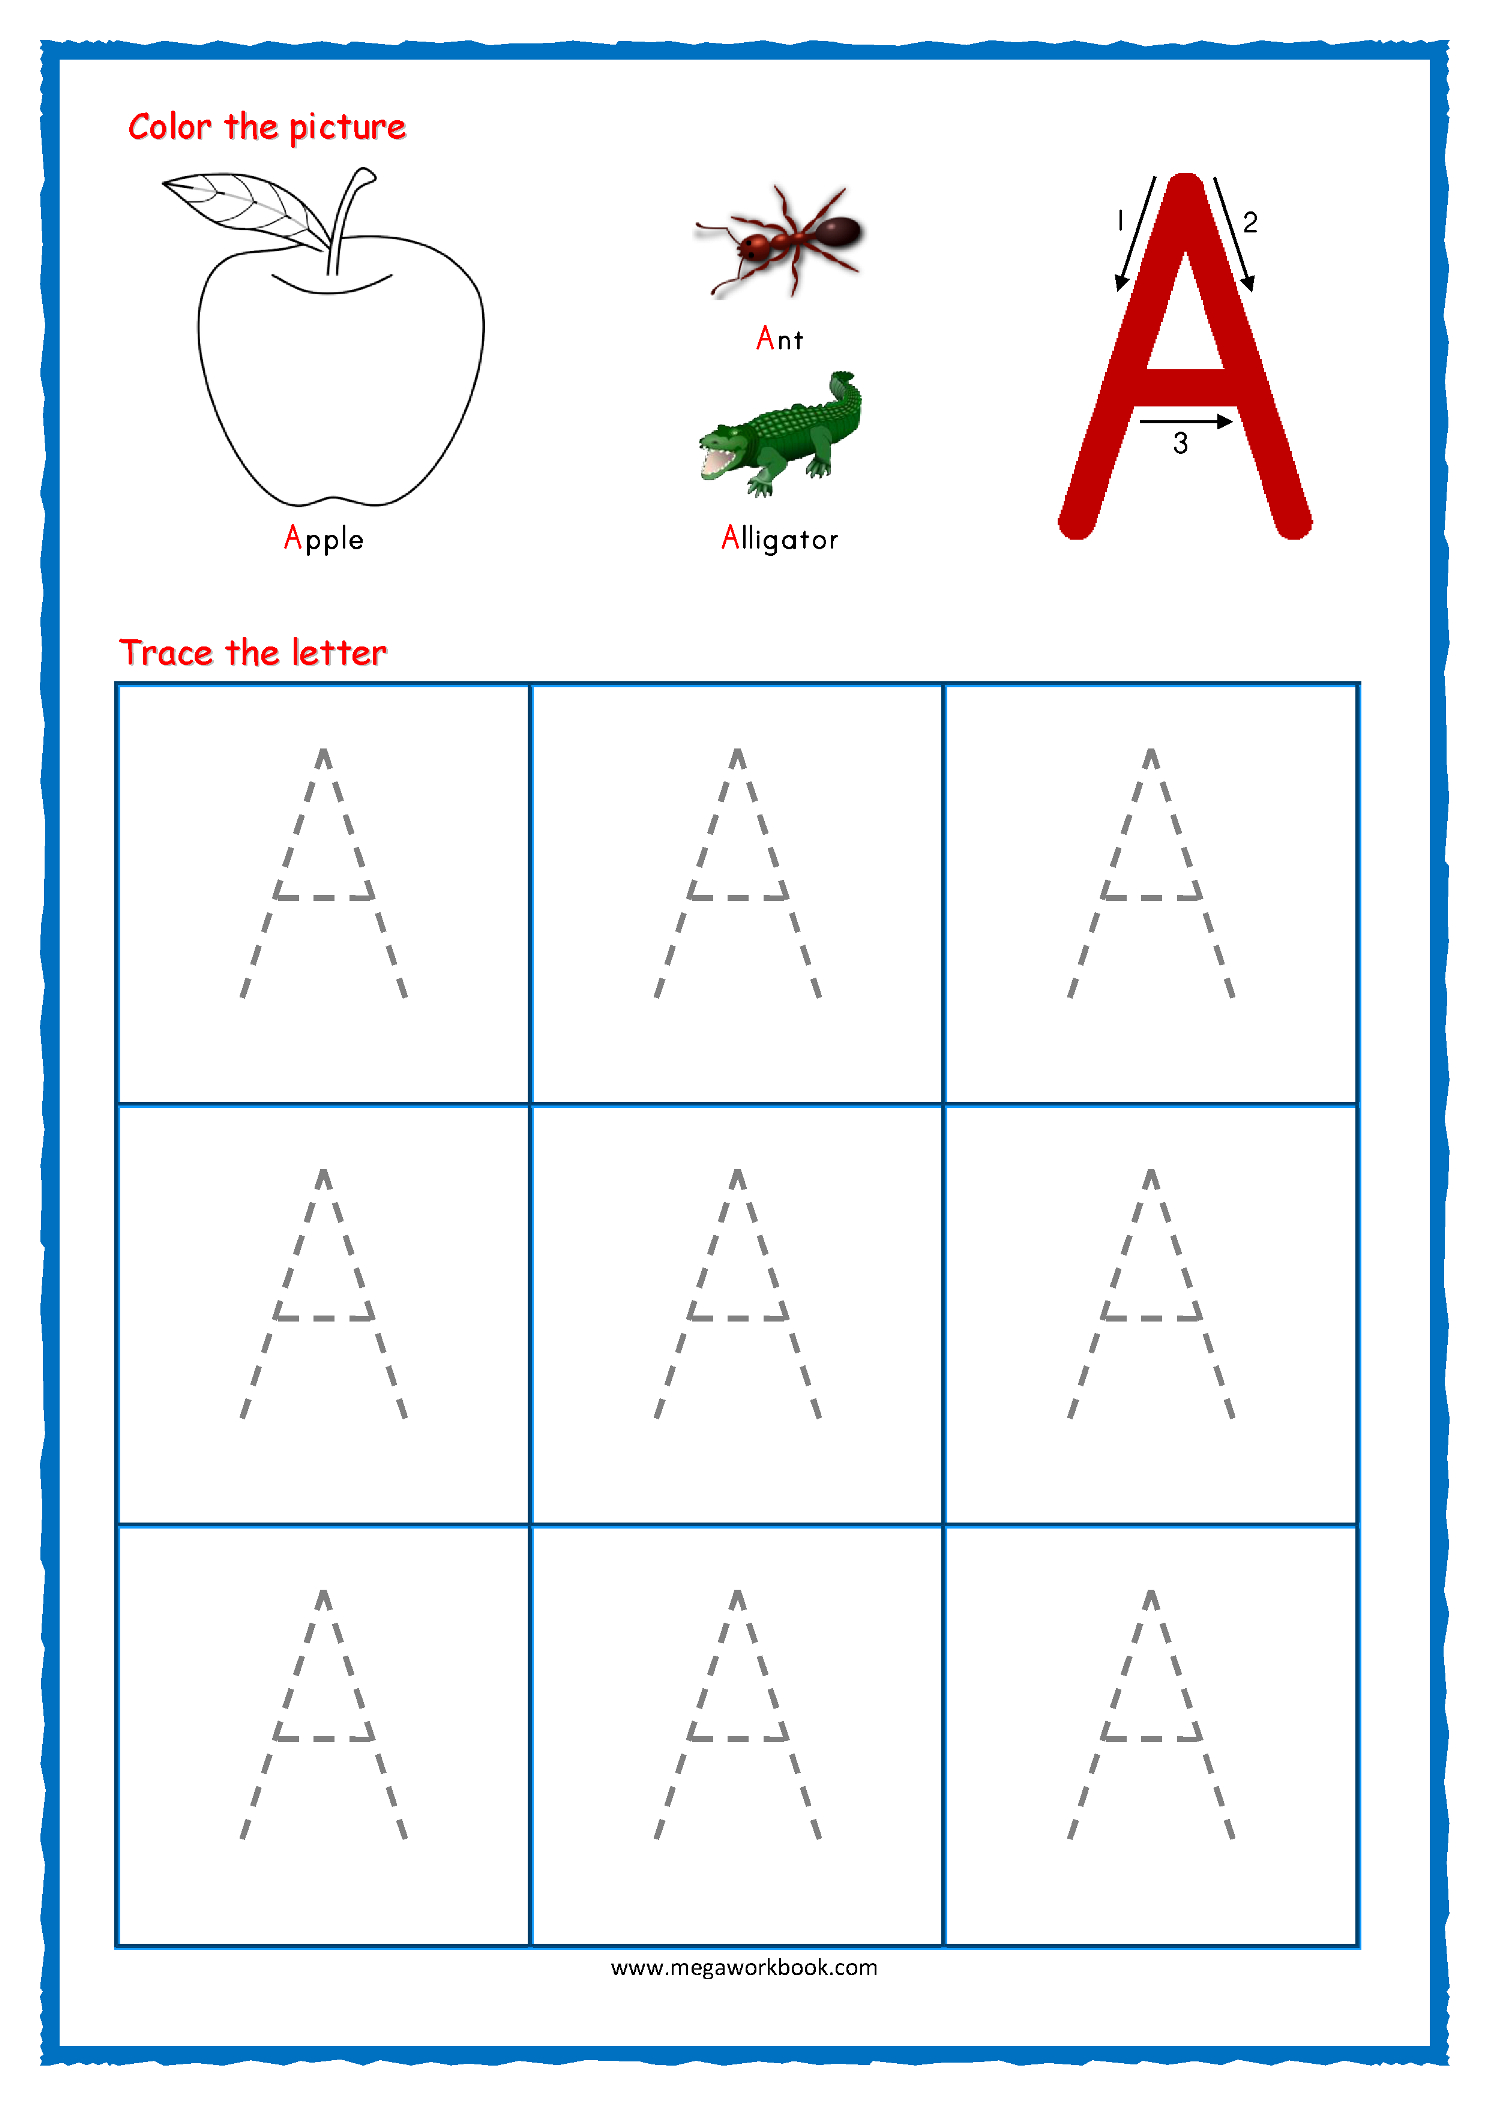 Coloring Book : Coloring Book Alphabet Tracing Worksheets throughout Alphabet Letters Worksheets Tracing